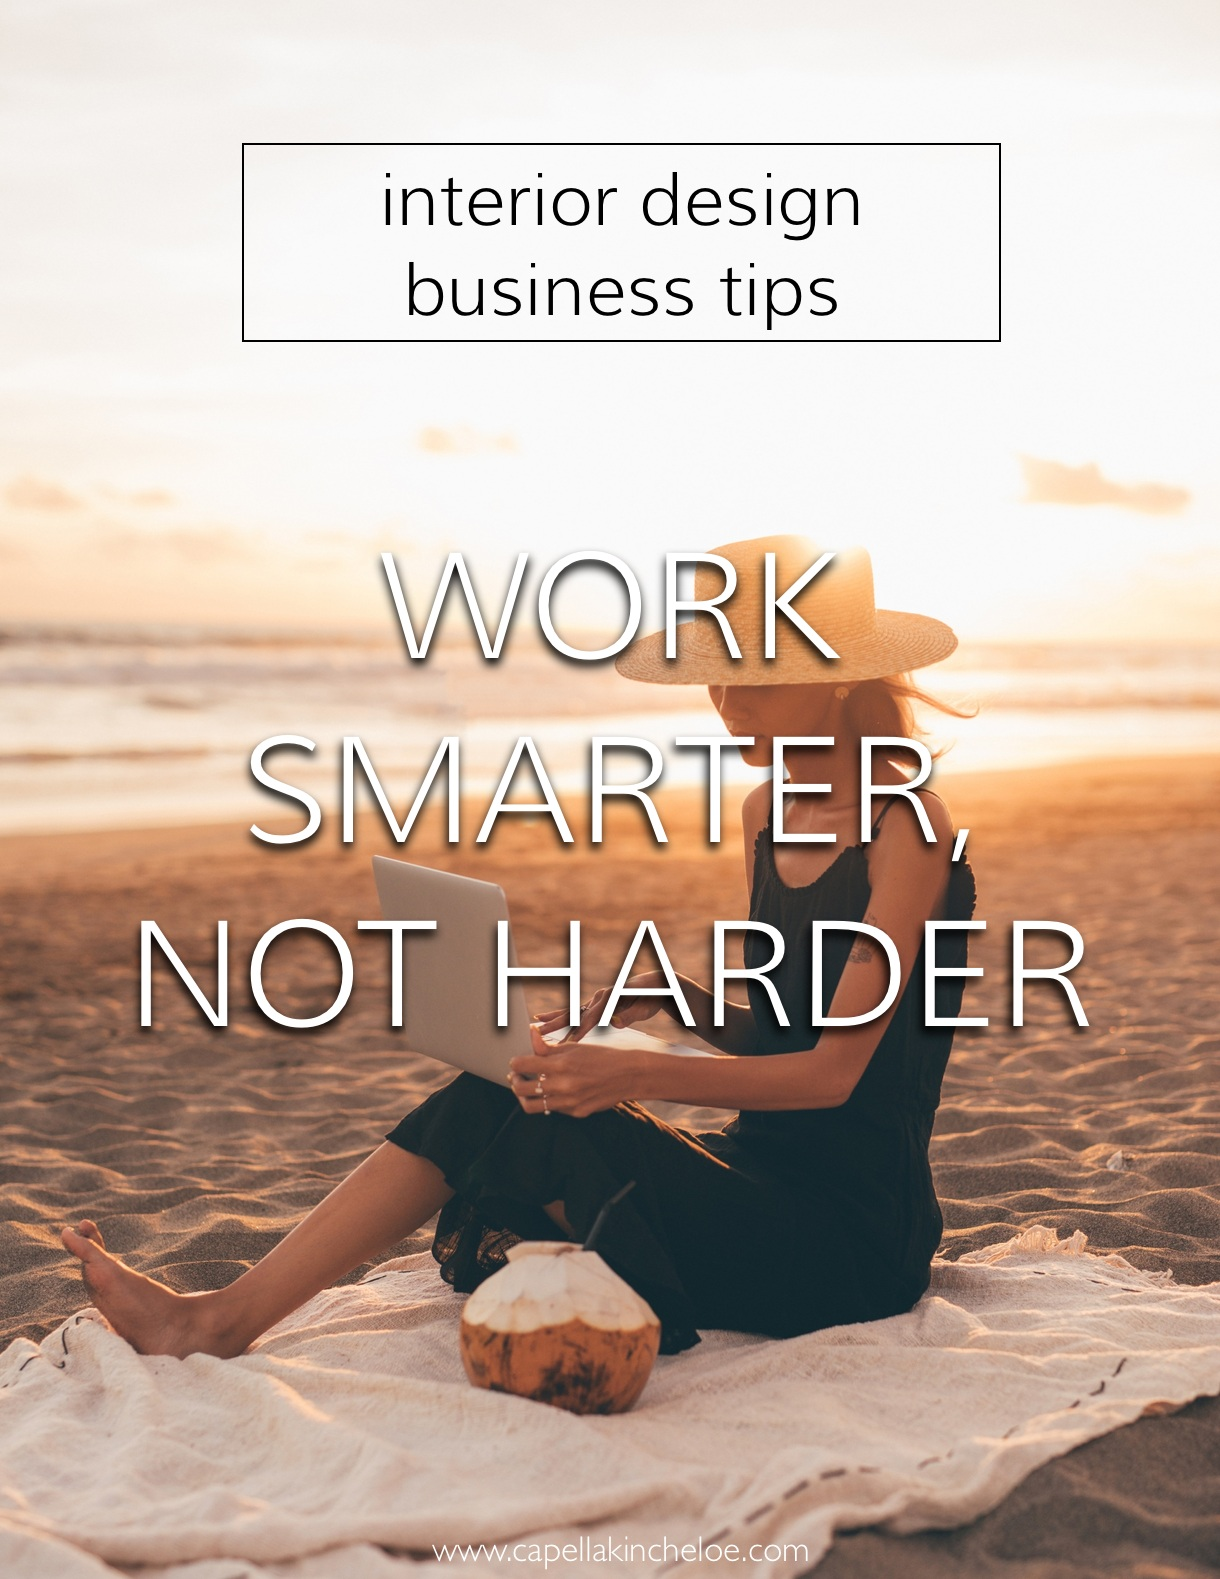 Limited time, learn how you can work smarter and not harder in your interior design business. #interiordesignbusiness #cktradesecrets #worksmarternotharder